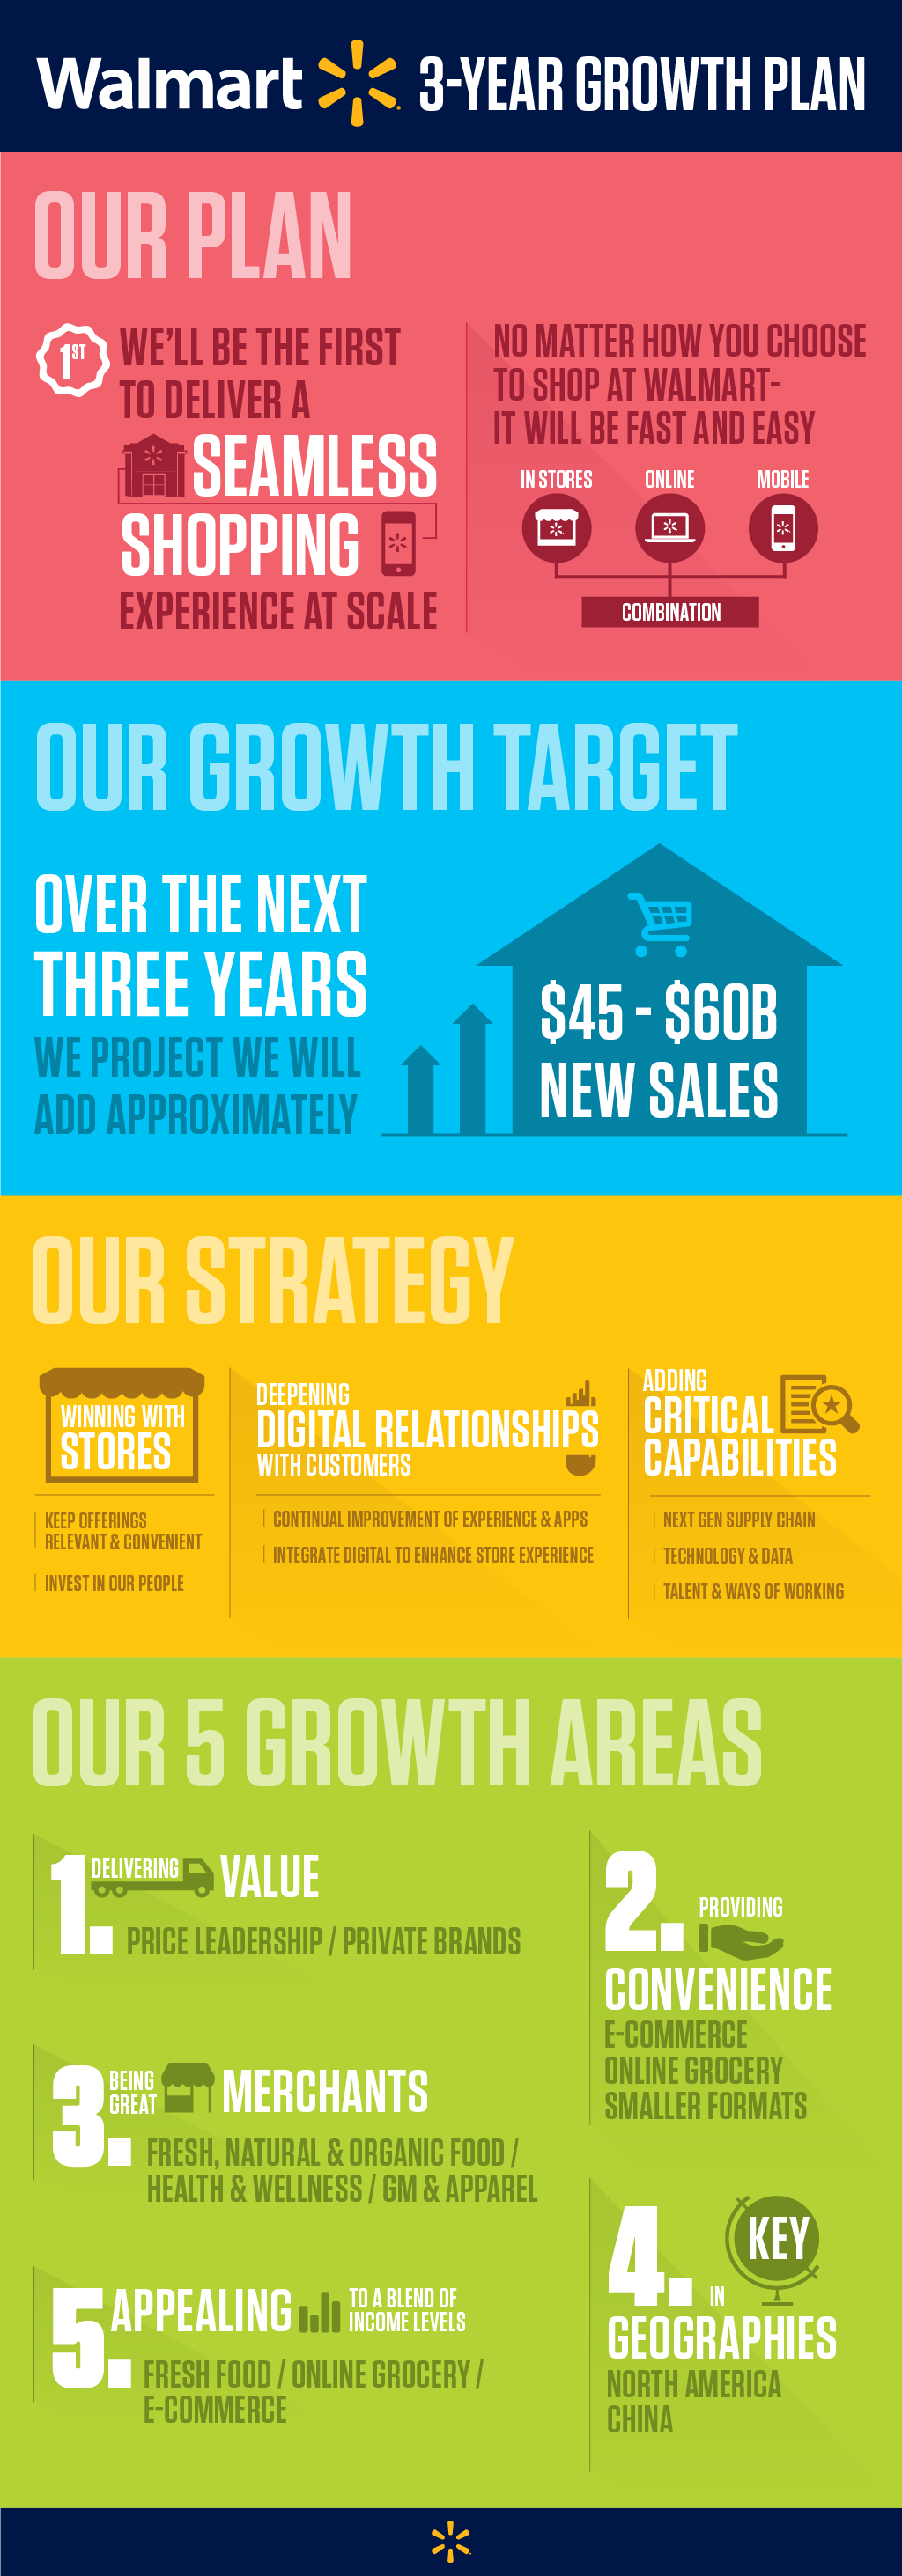 Infographic illustrating highlights of the Walmart 3 Year growth plan